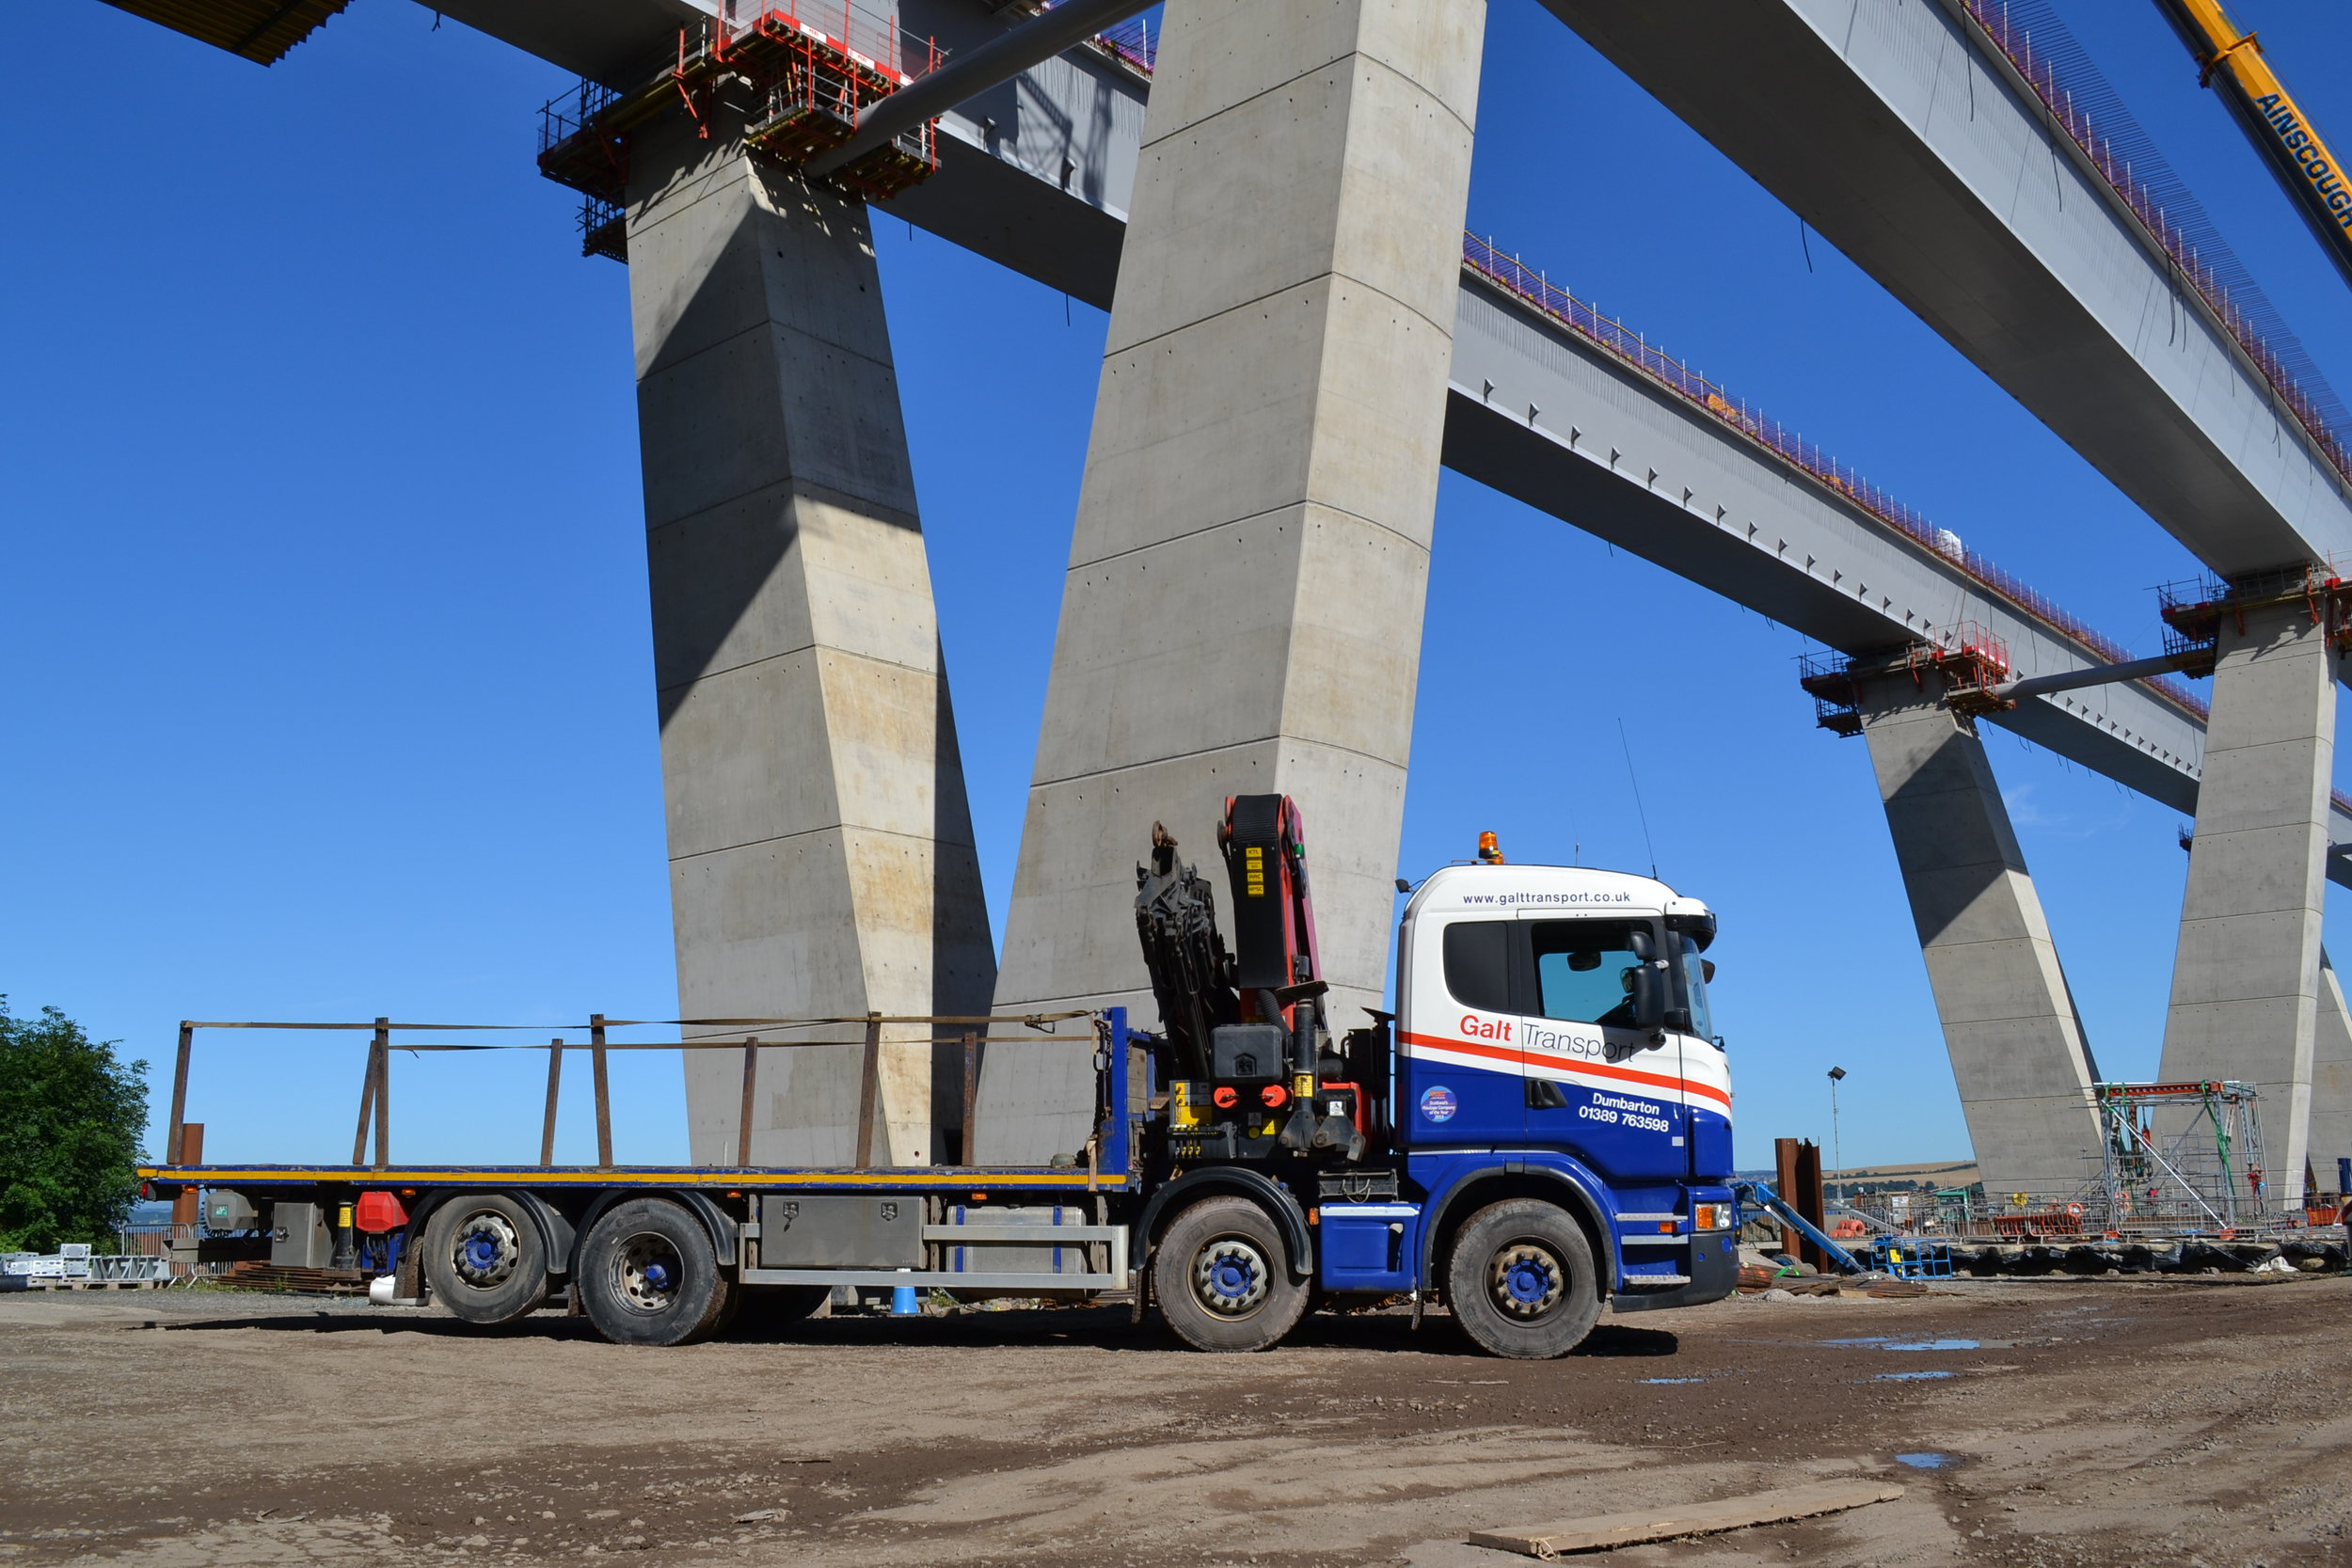 A rigid hiab with front mounted crane